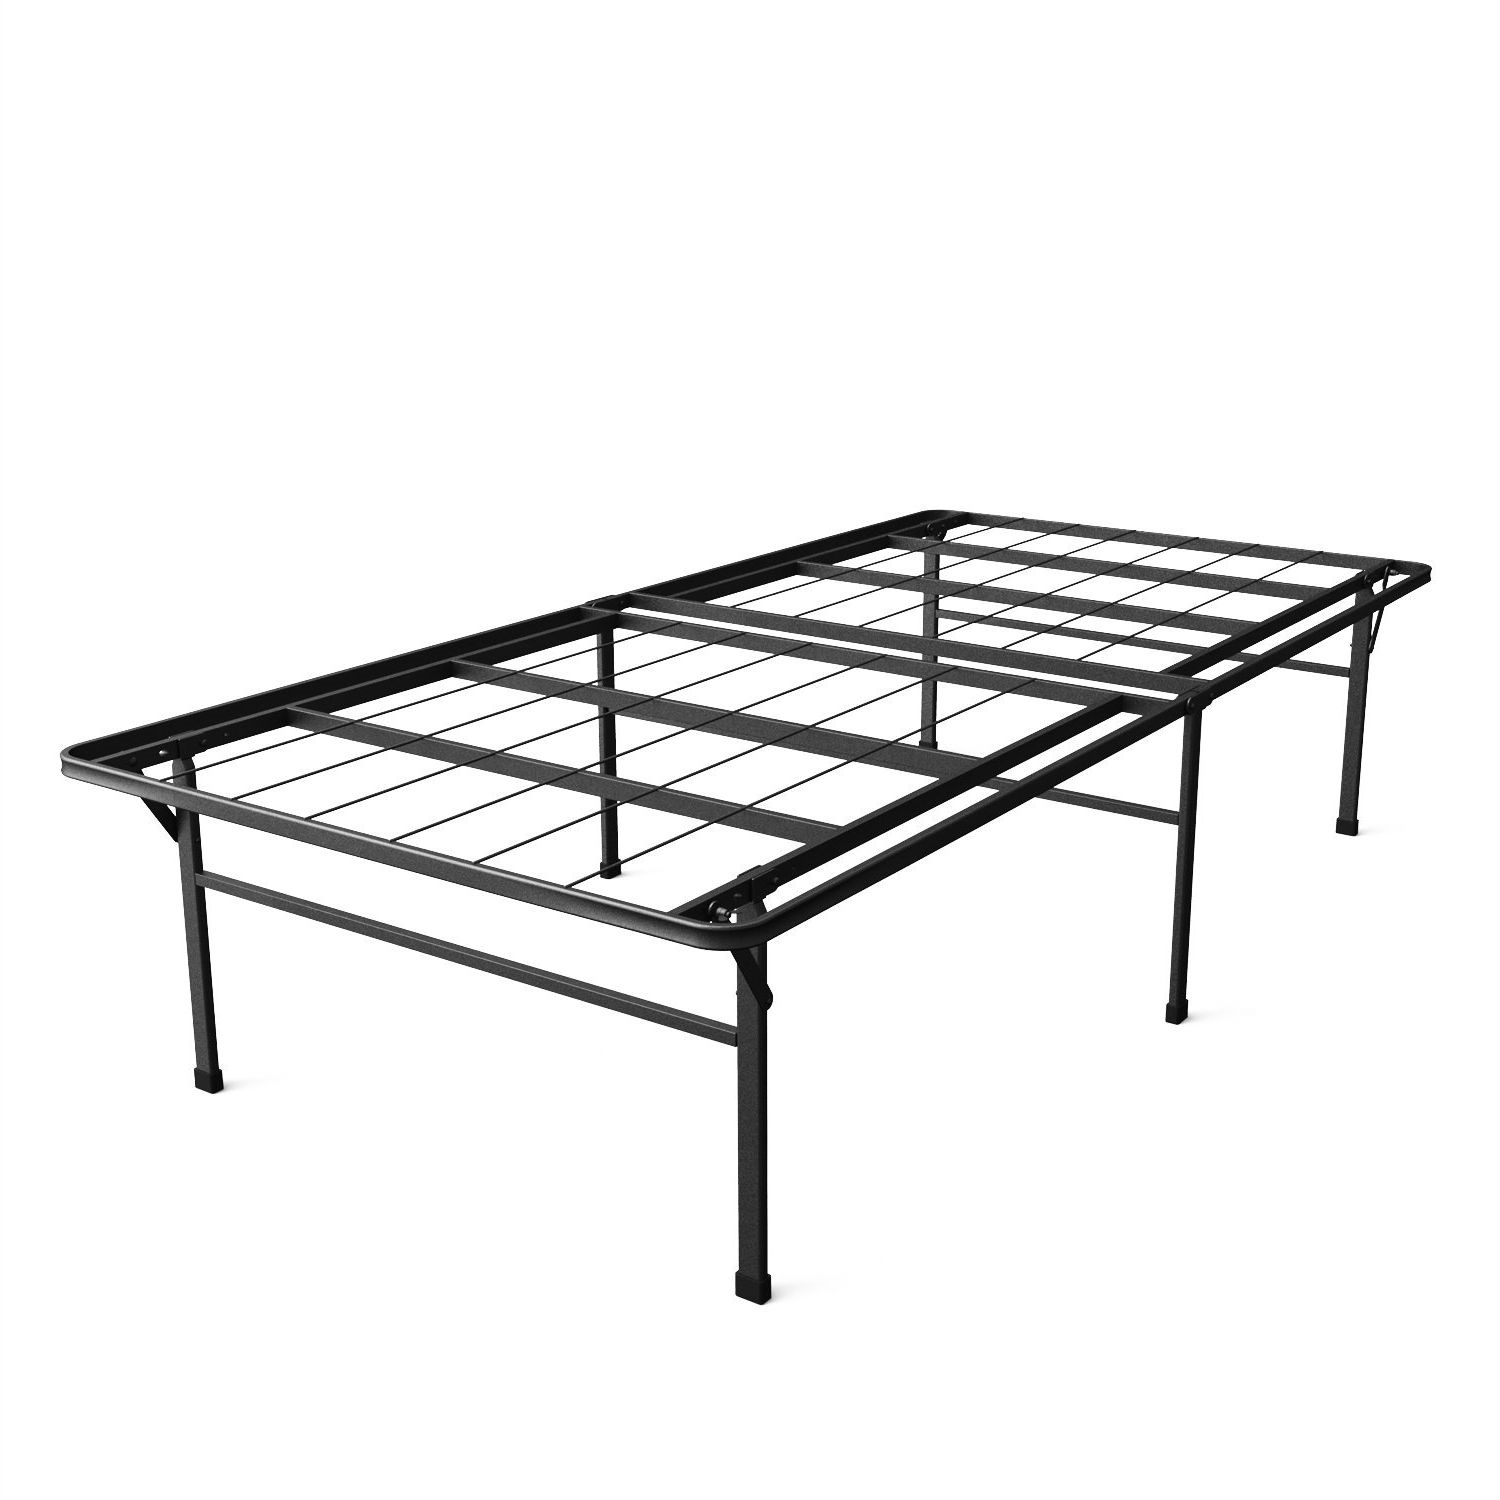 Modern High Bed Frame Style